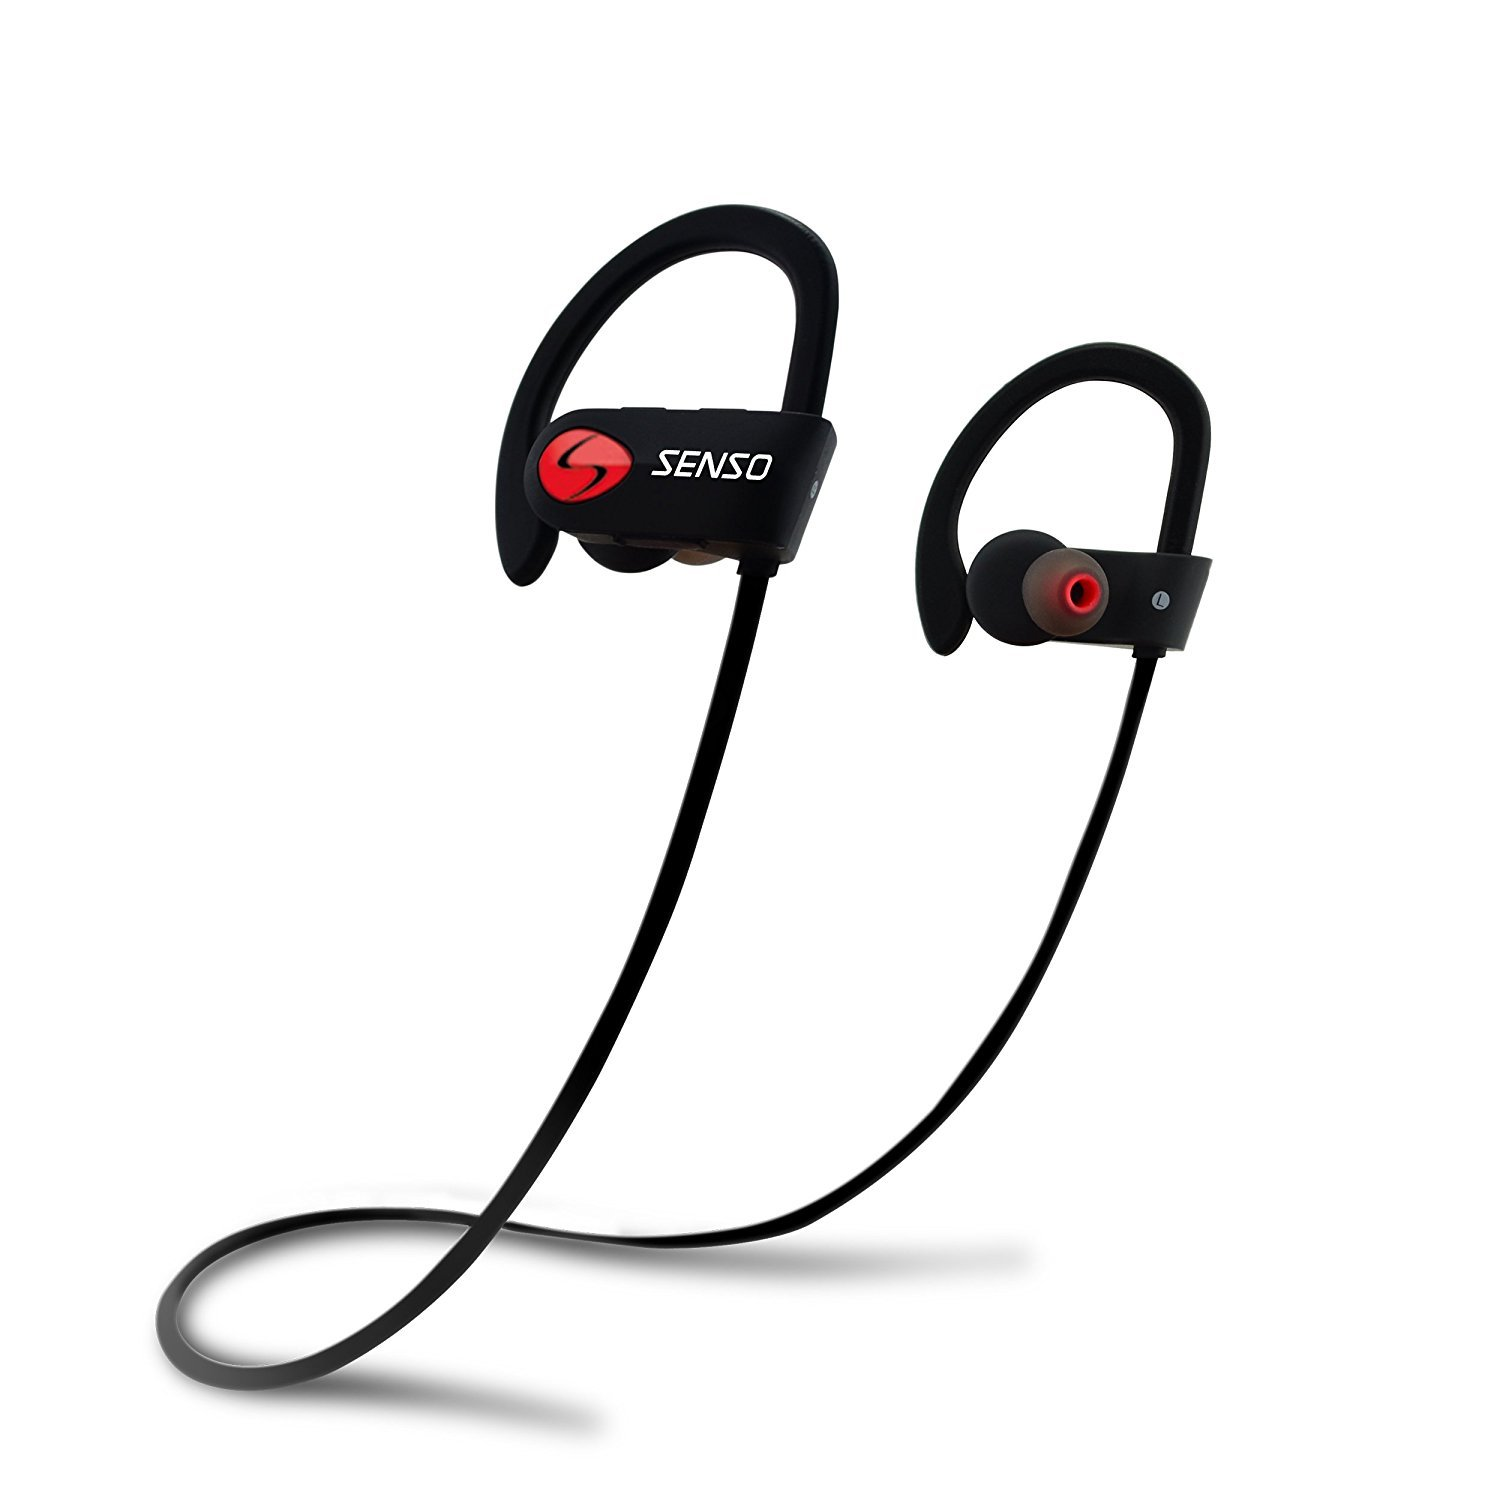 senso bluetooth headphones best wireless sports earphones w mic ipx7 ebay. Black Bedroom Furniture Sets. Home Design Ideas